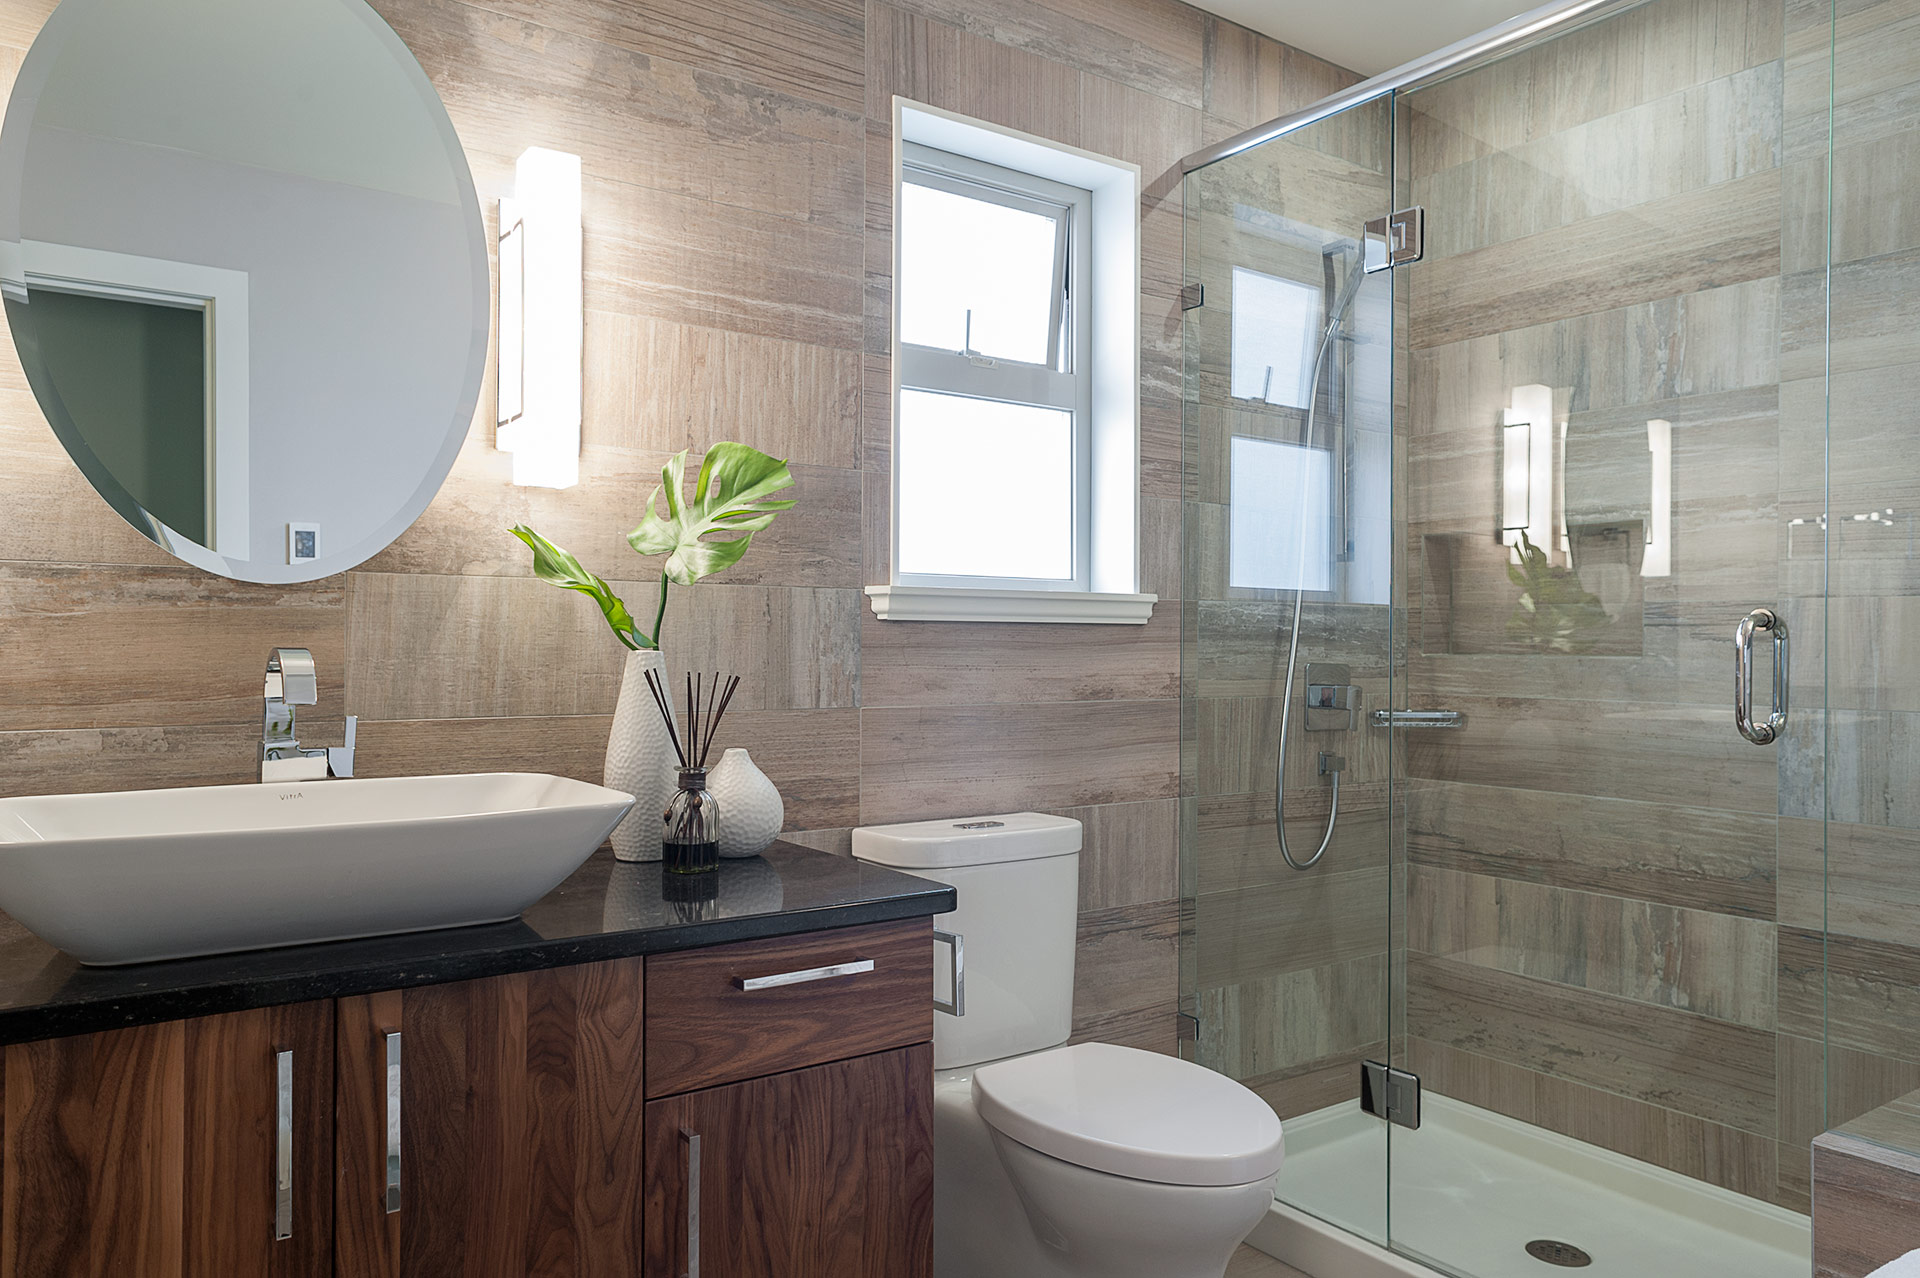 Small Bathroom Renovation Loaded With Style | Modern Home ... on Small Bathroom Renovation  id=49843